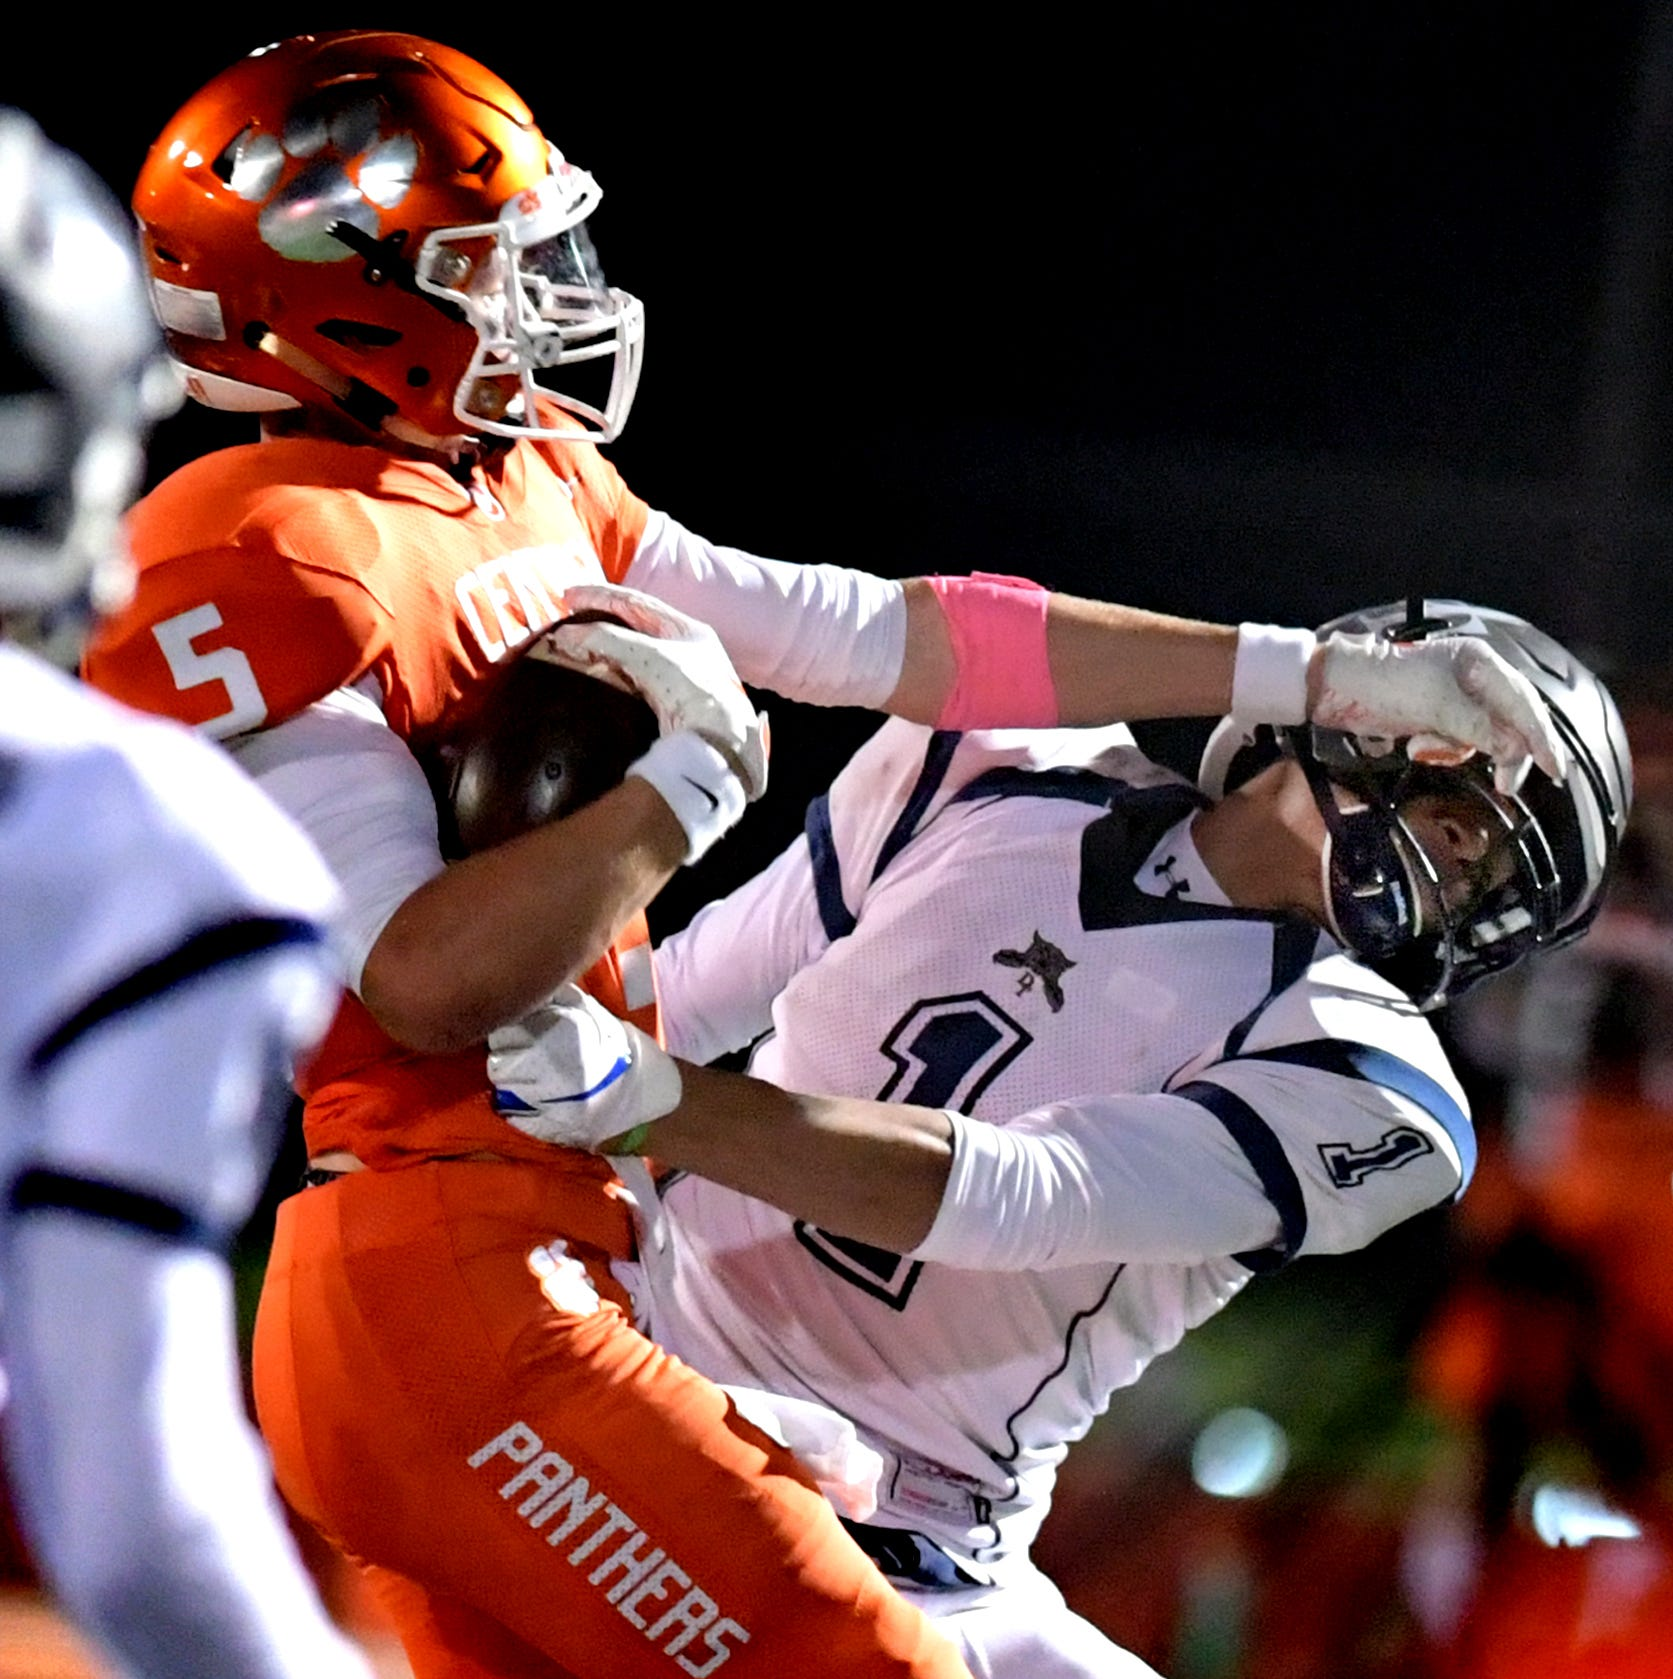 Central York football avoids déjà vu, beats Dallastown with strong second half